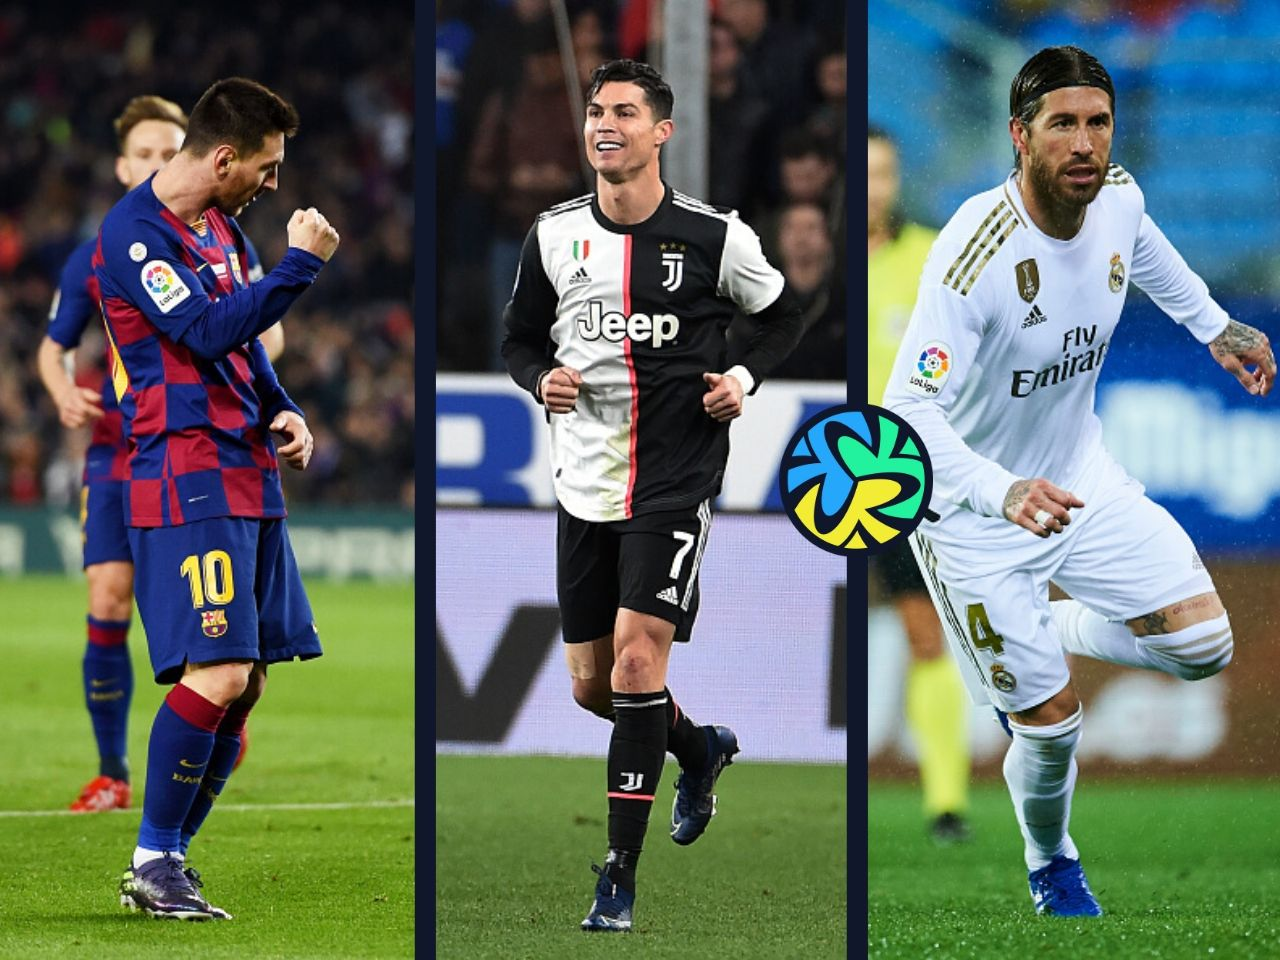 Ultimate XI: Best players of the last decade, Cristiano Ronaldo, Lionel Messi, Sergio Ramos